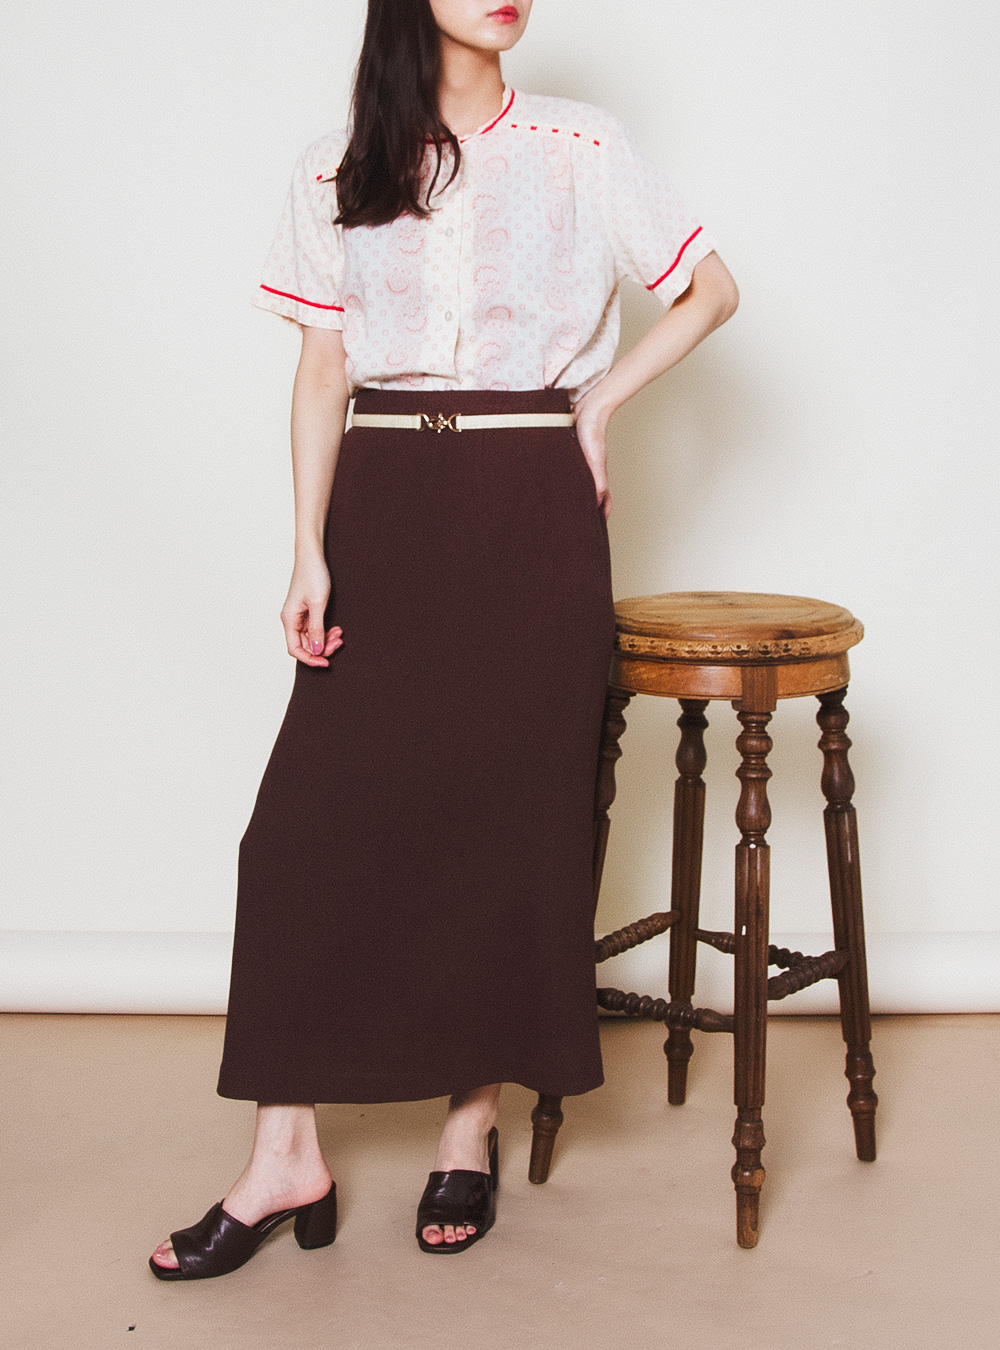 Nuance Brown Long Skirt